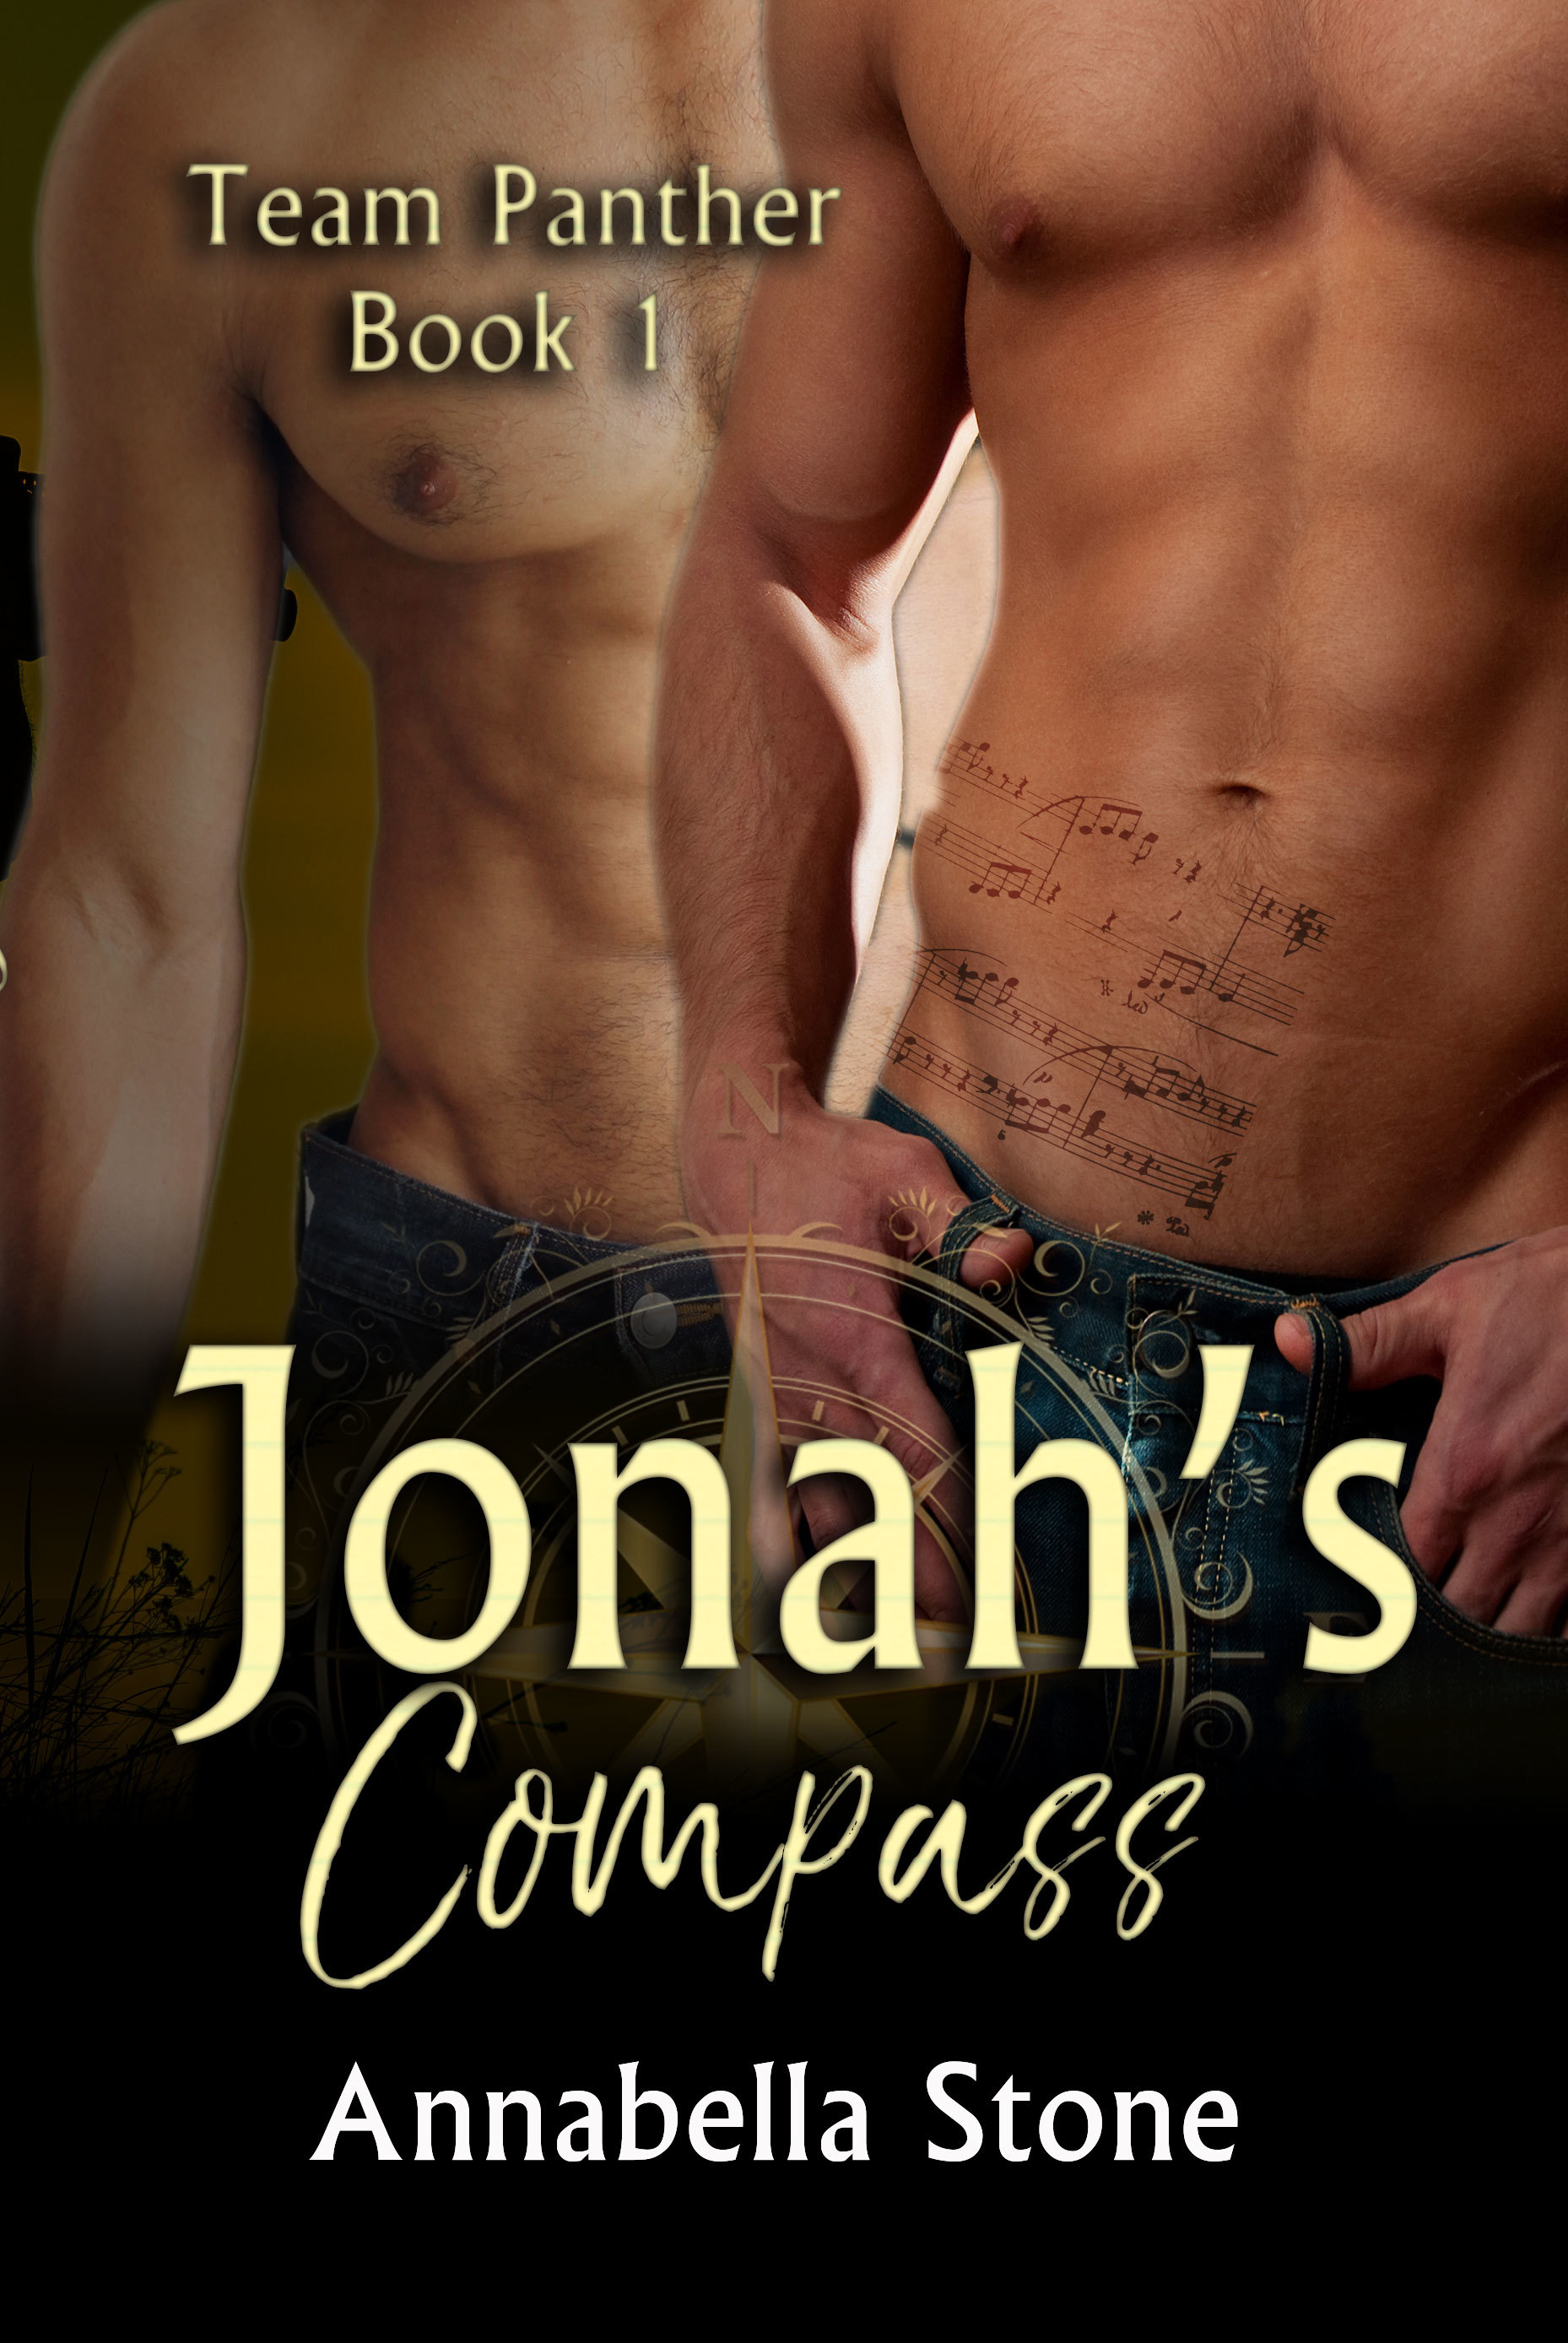 Jonah's Compass (Delta Force: Team Panther #1)